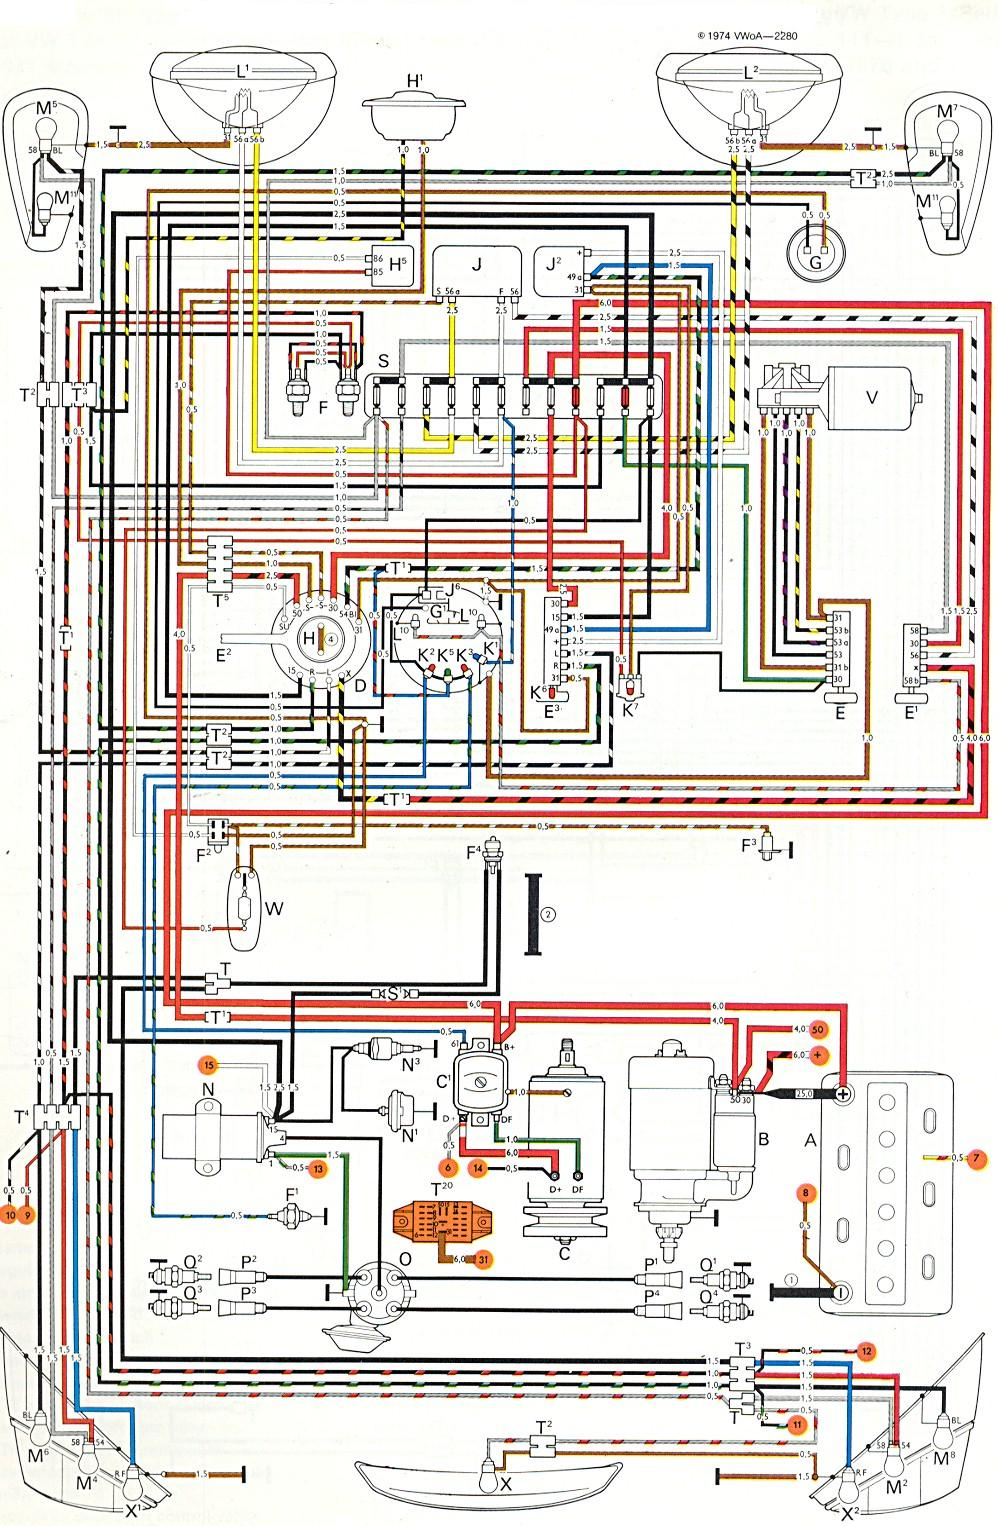 small resolution of 1958 vw bug wiring diagram wiring schematic data 2001 volkswagen beetle wiring diagram 1976 vw beetle